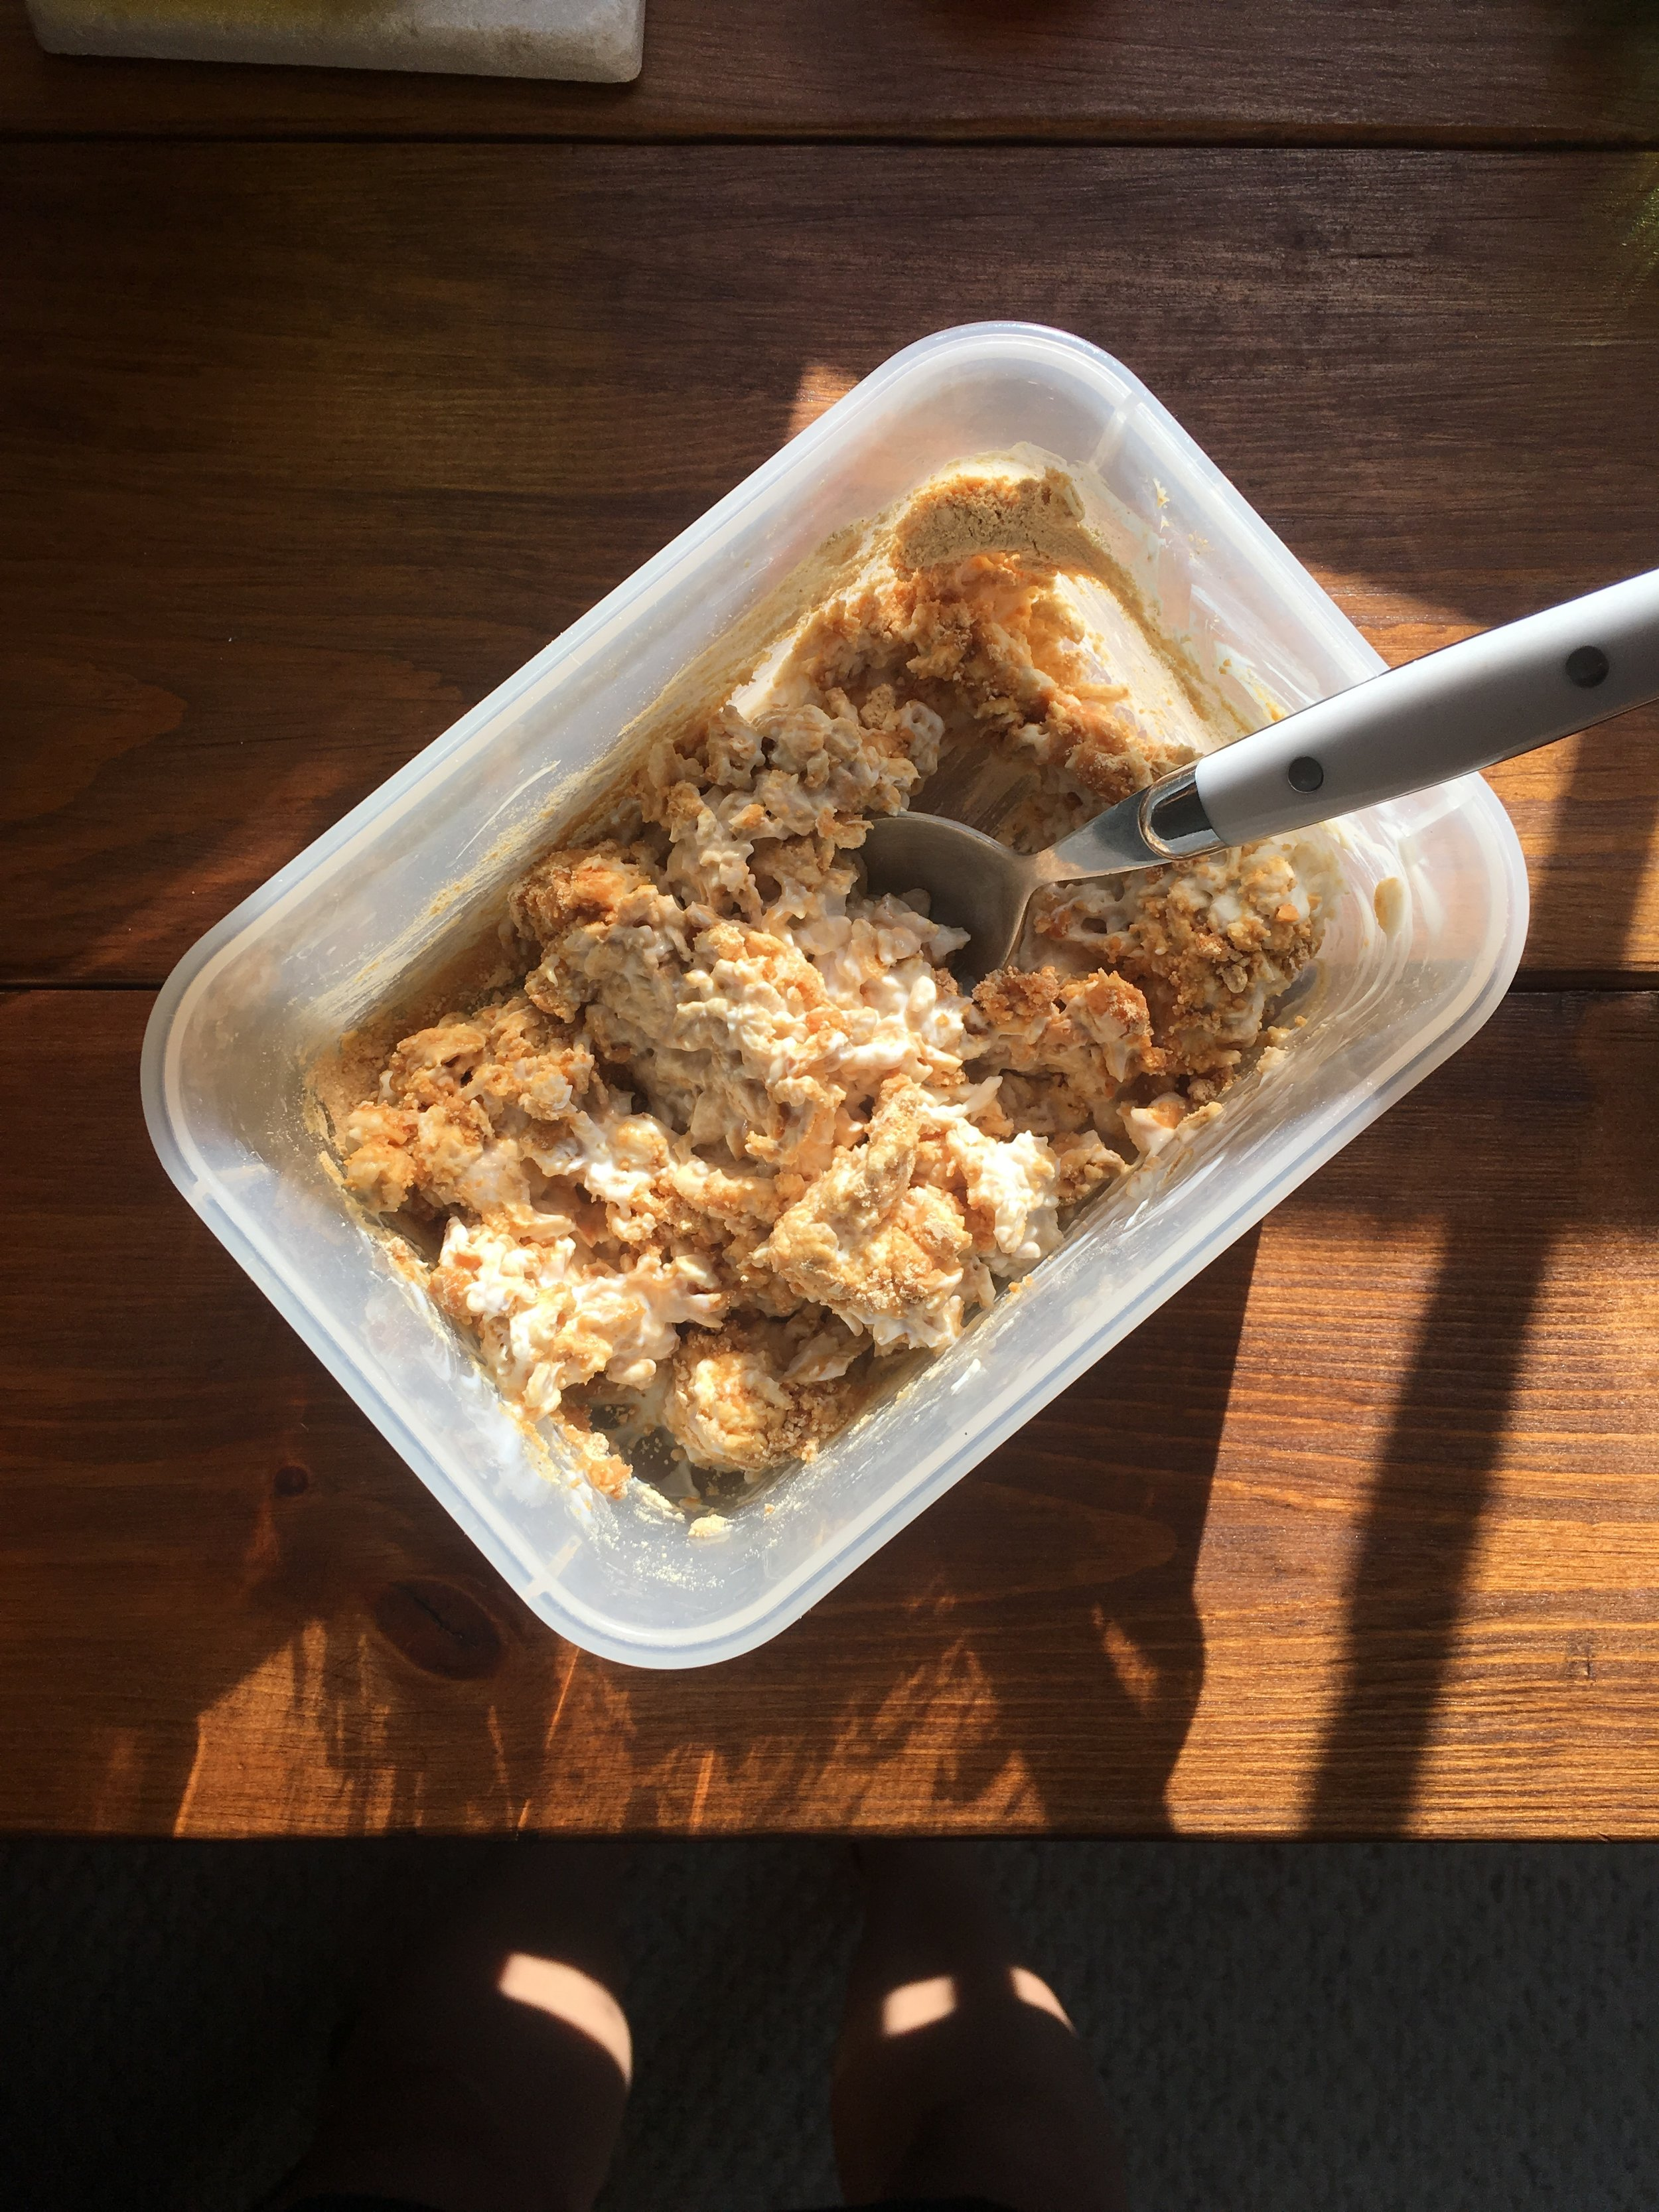 Overnight oats that weren't so overnight because I totally forgot to make them the night before. Just mixed oats, yogurt, peanut butter powder and honey in a tub and brought it to the office.